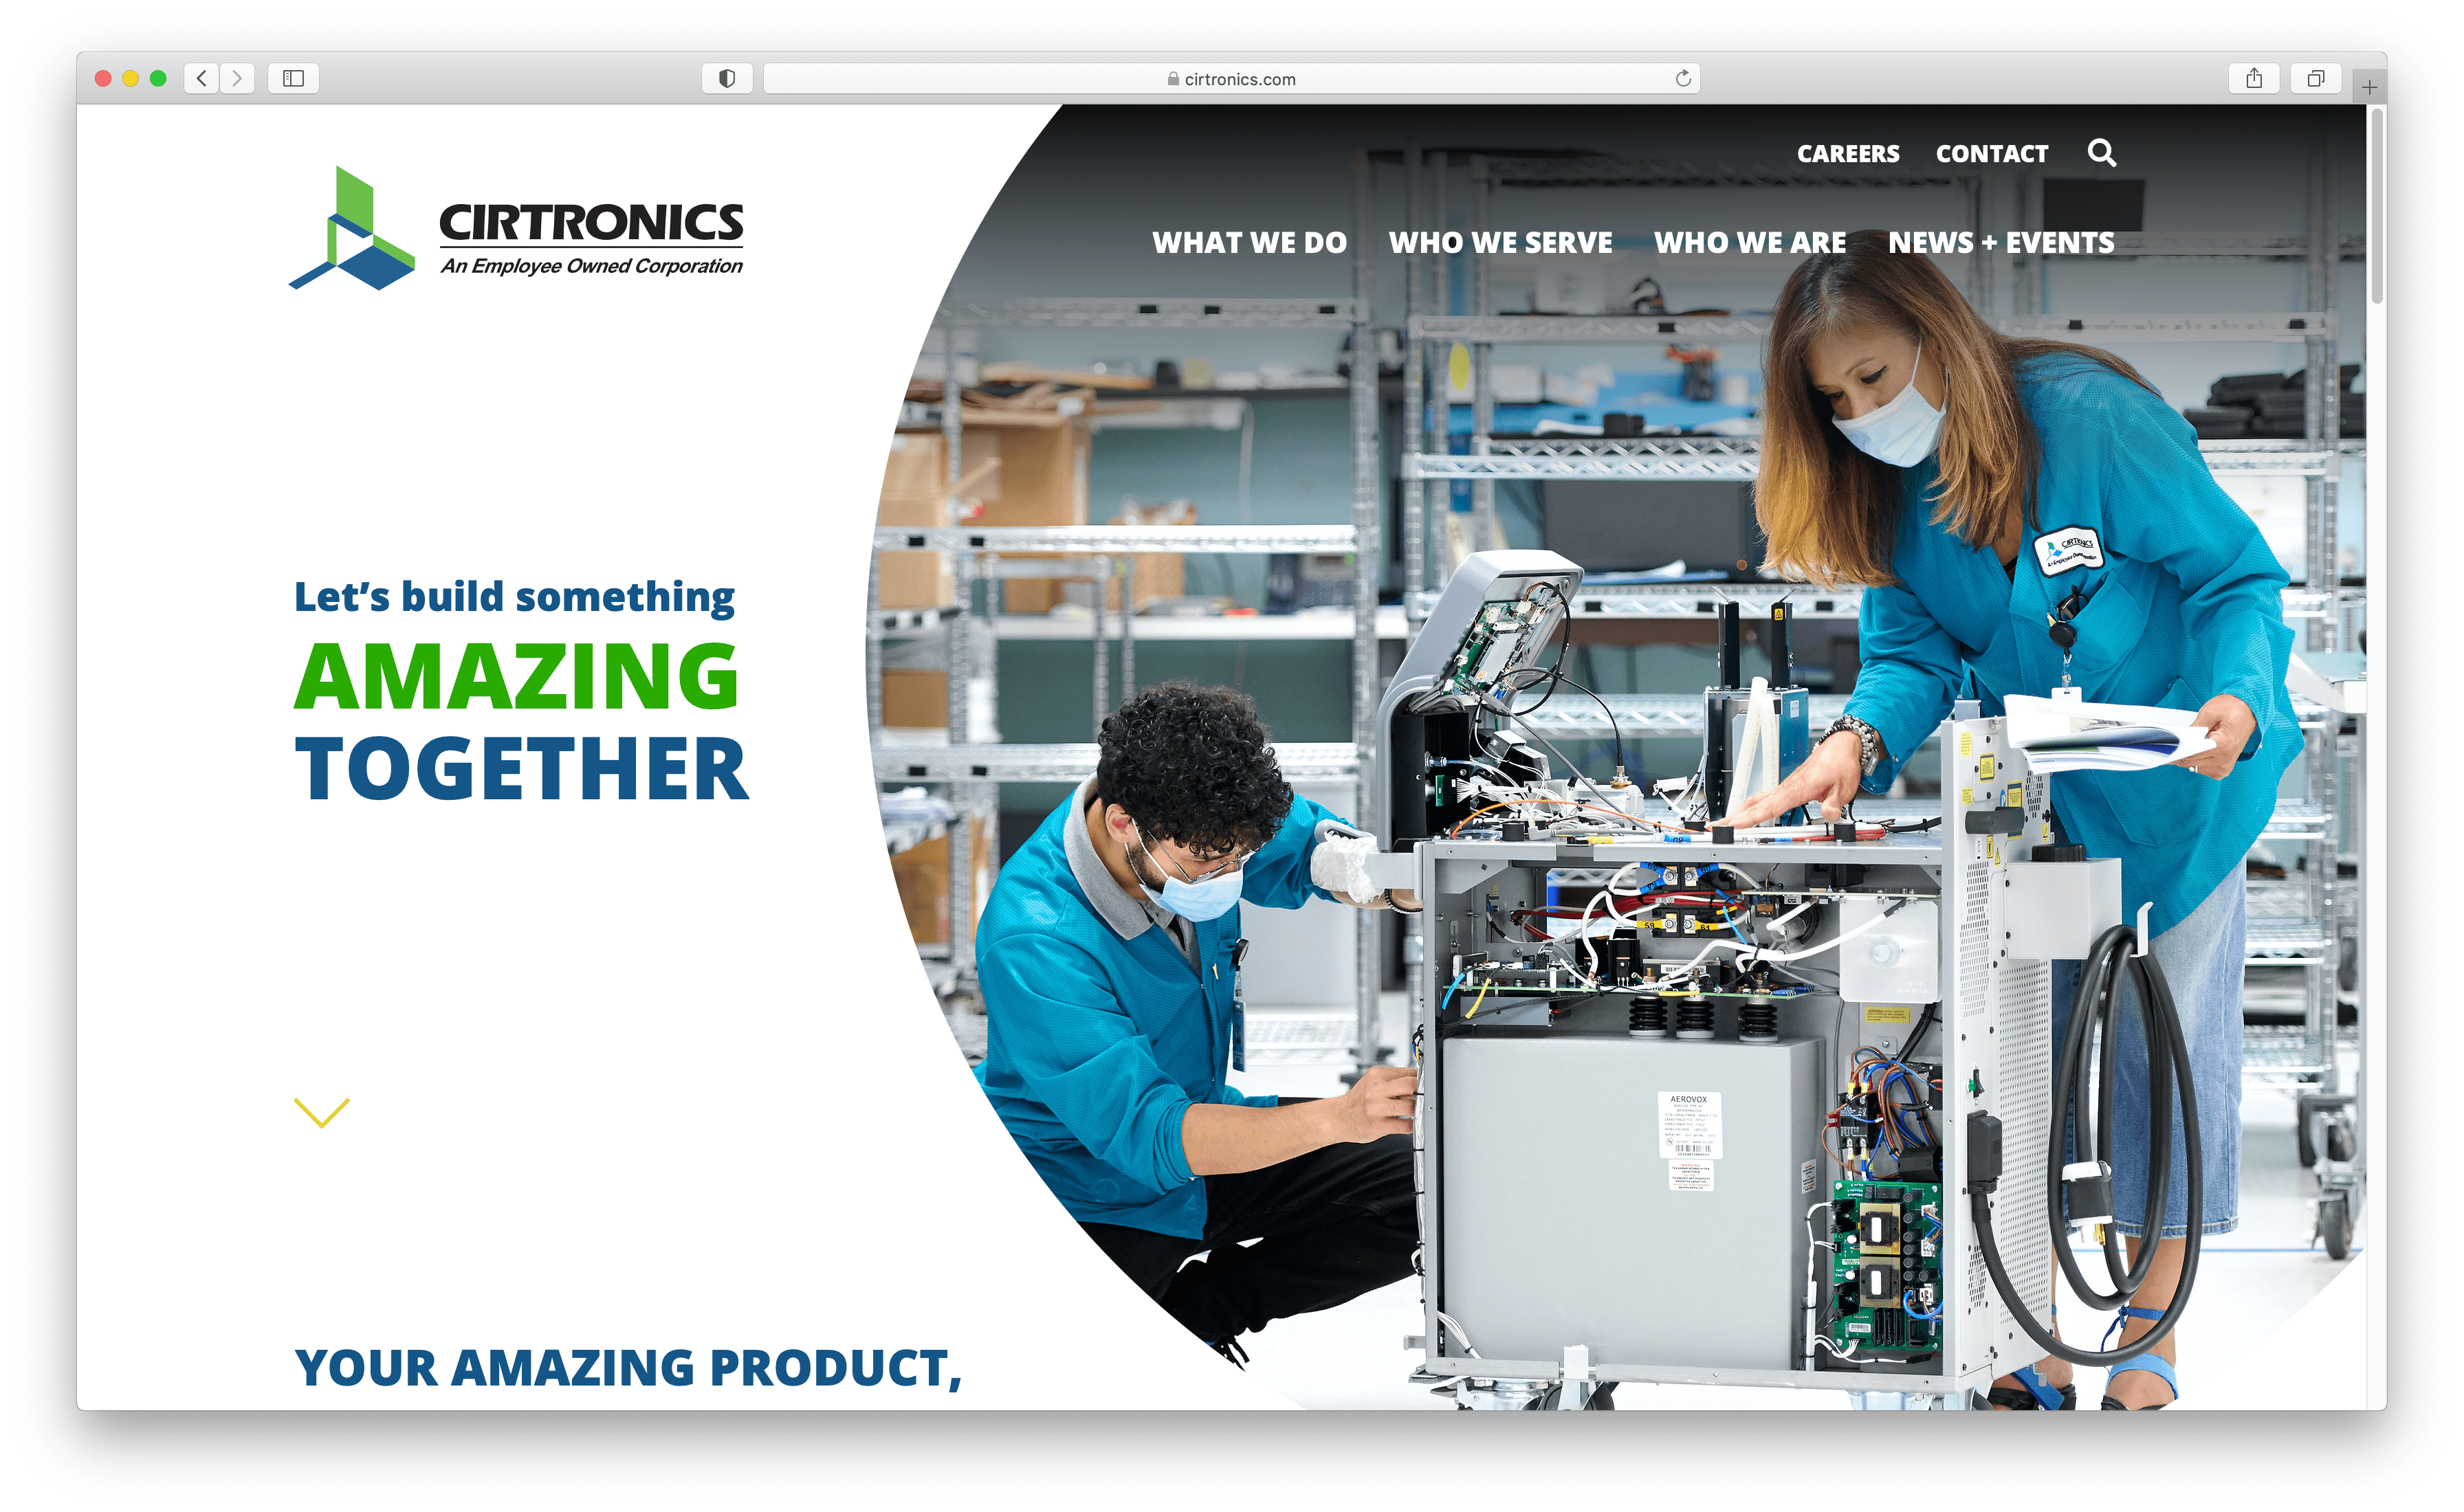 Cirtronics Homepage is a good example of asymmetrical design.